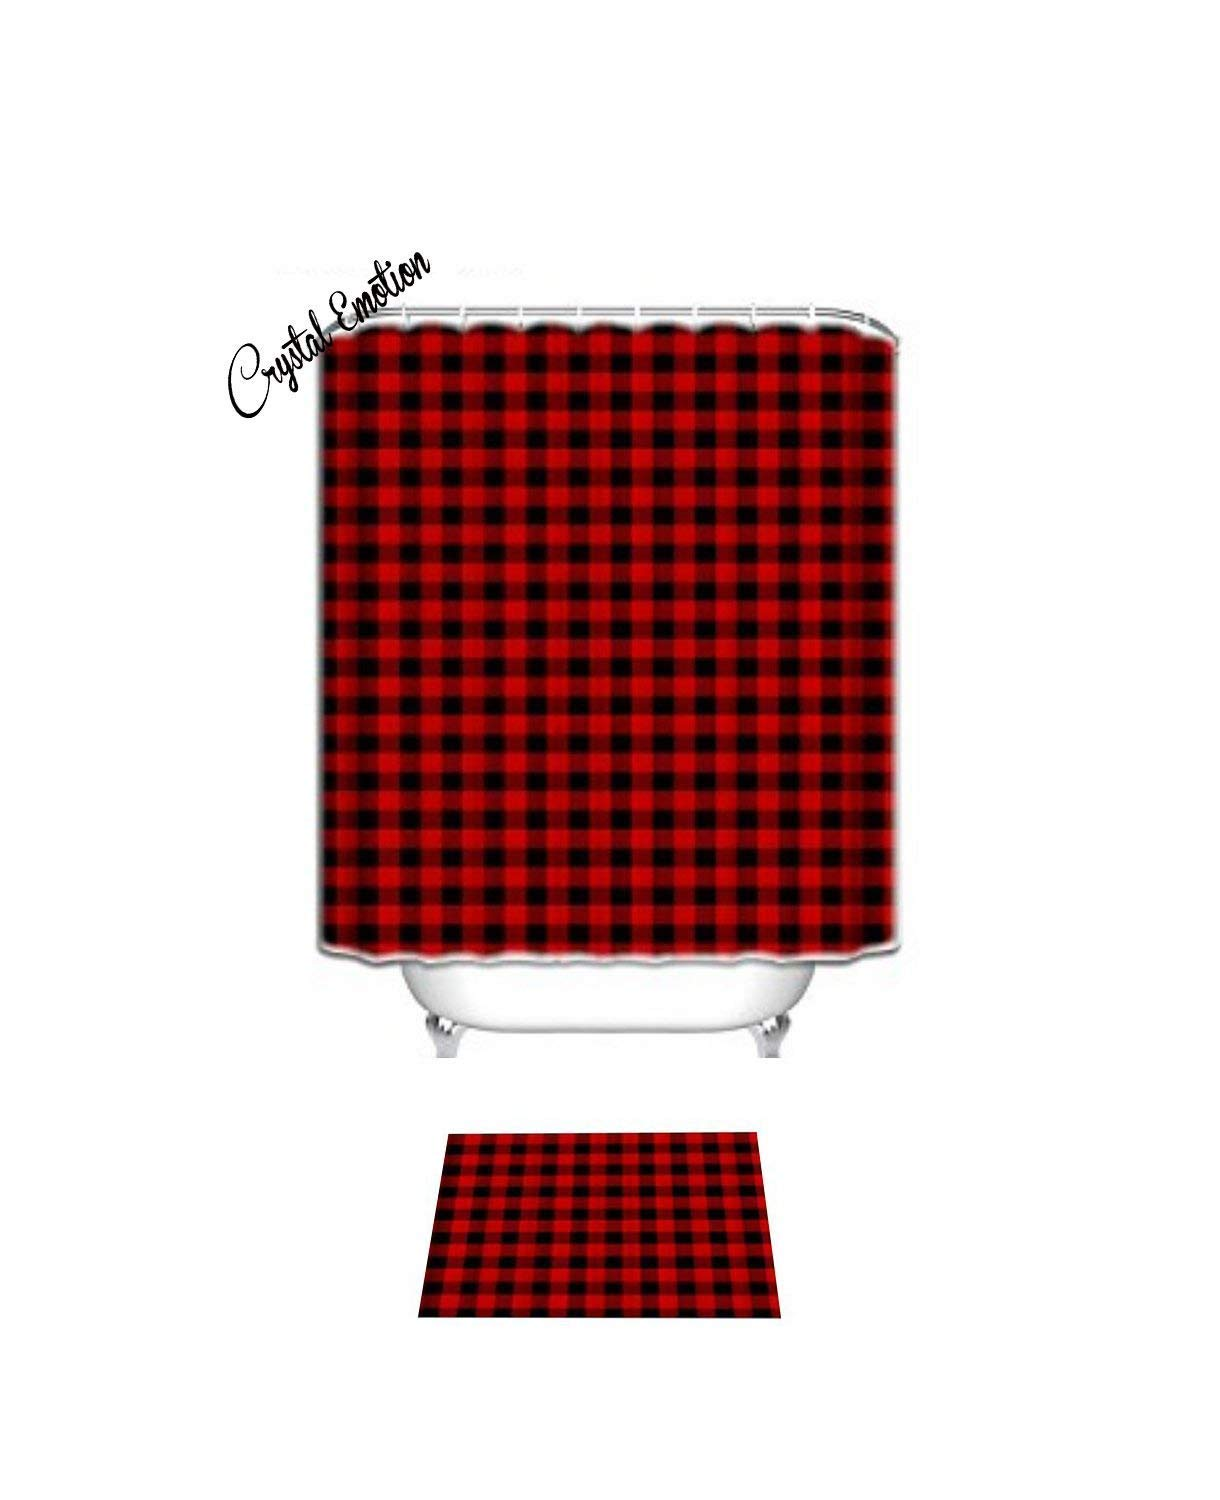 Crystal Emotion Rustic Red Black Buffalo Check Plaid Pattern Shower Curtain Set CrownLiny